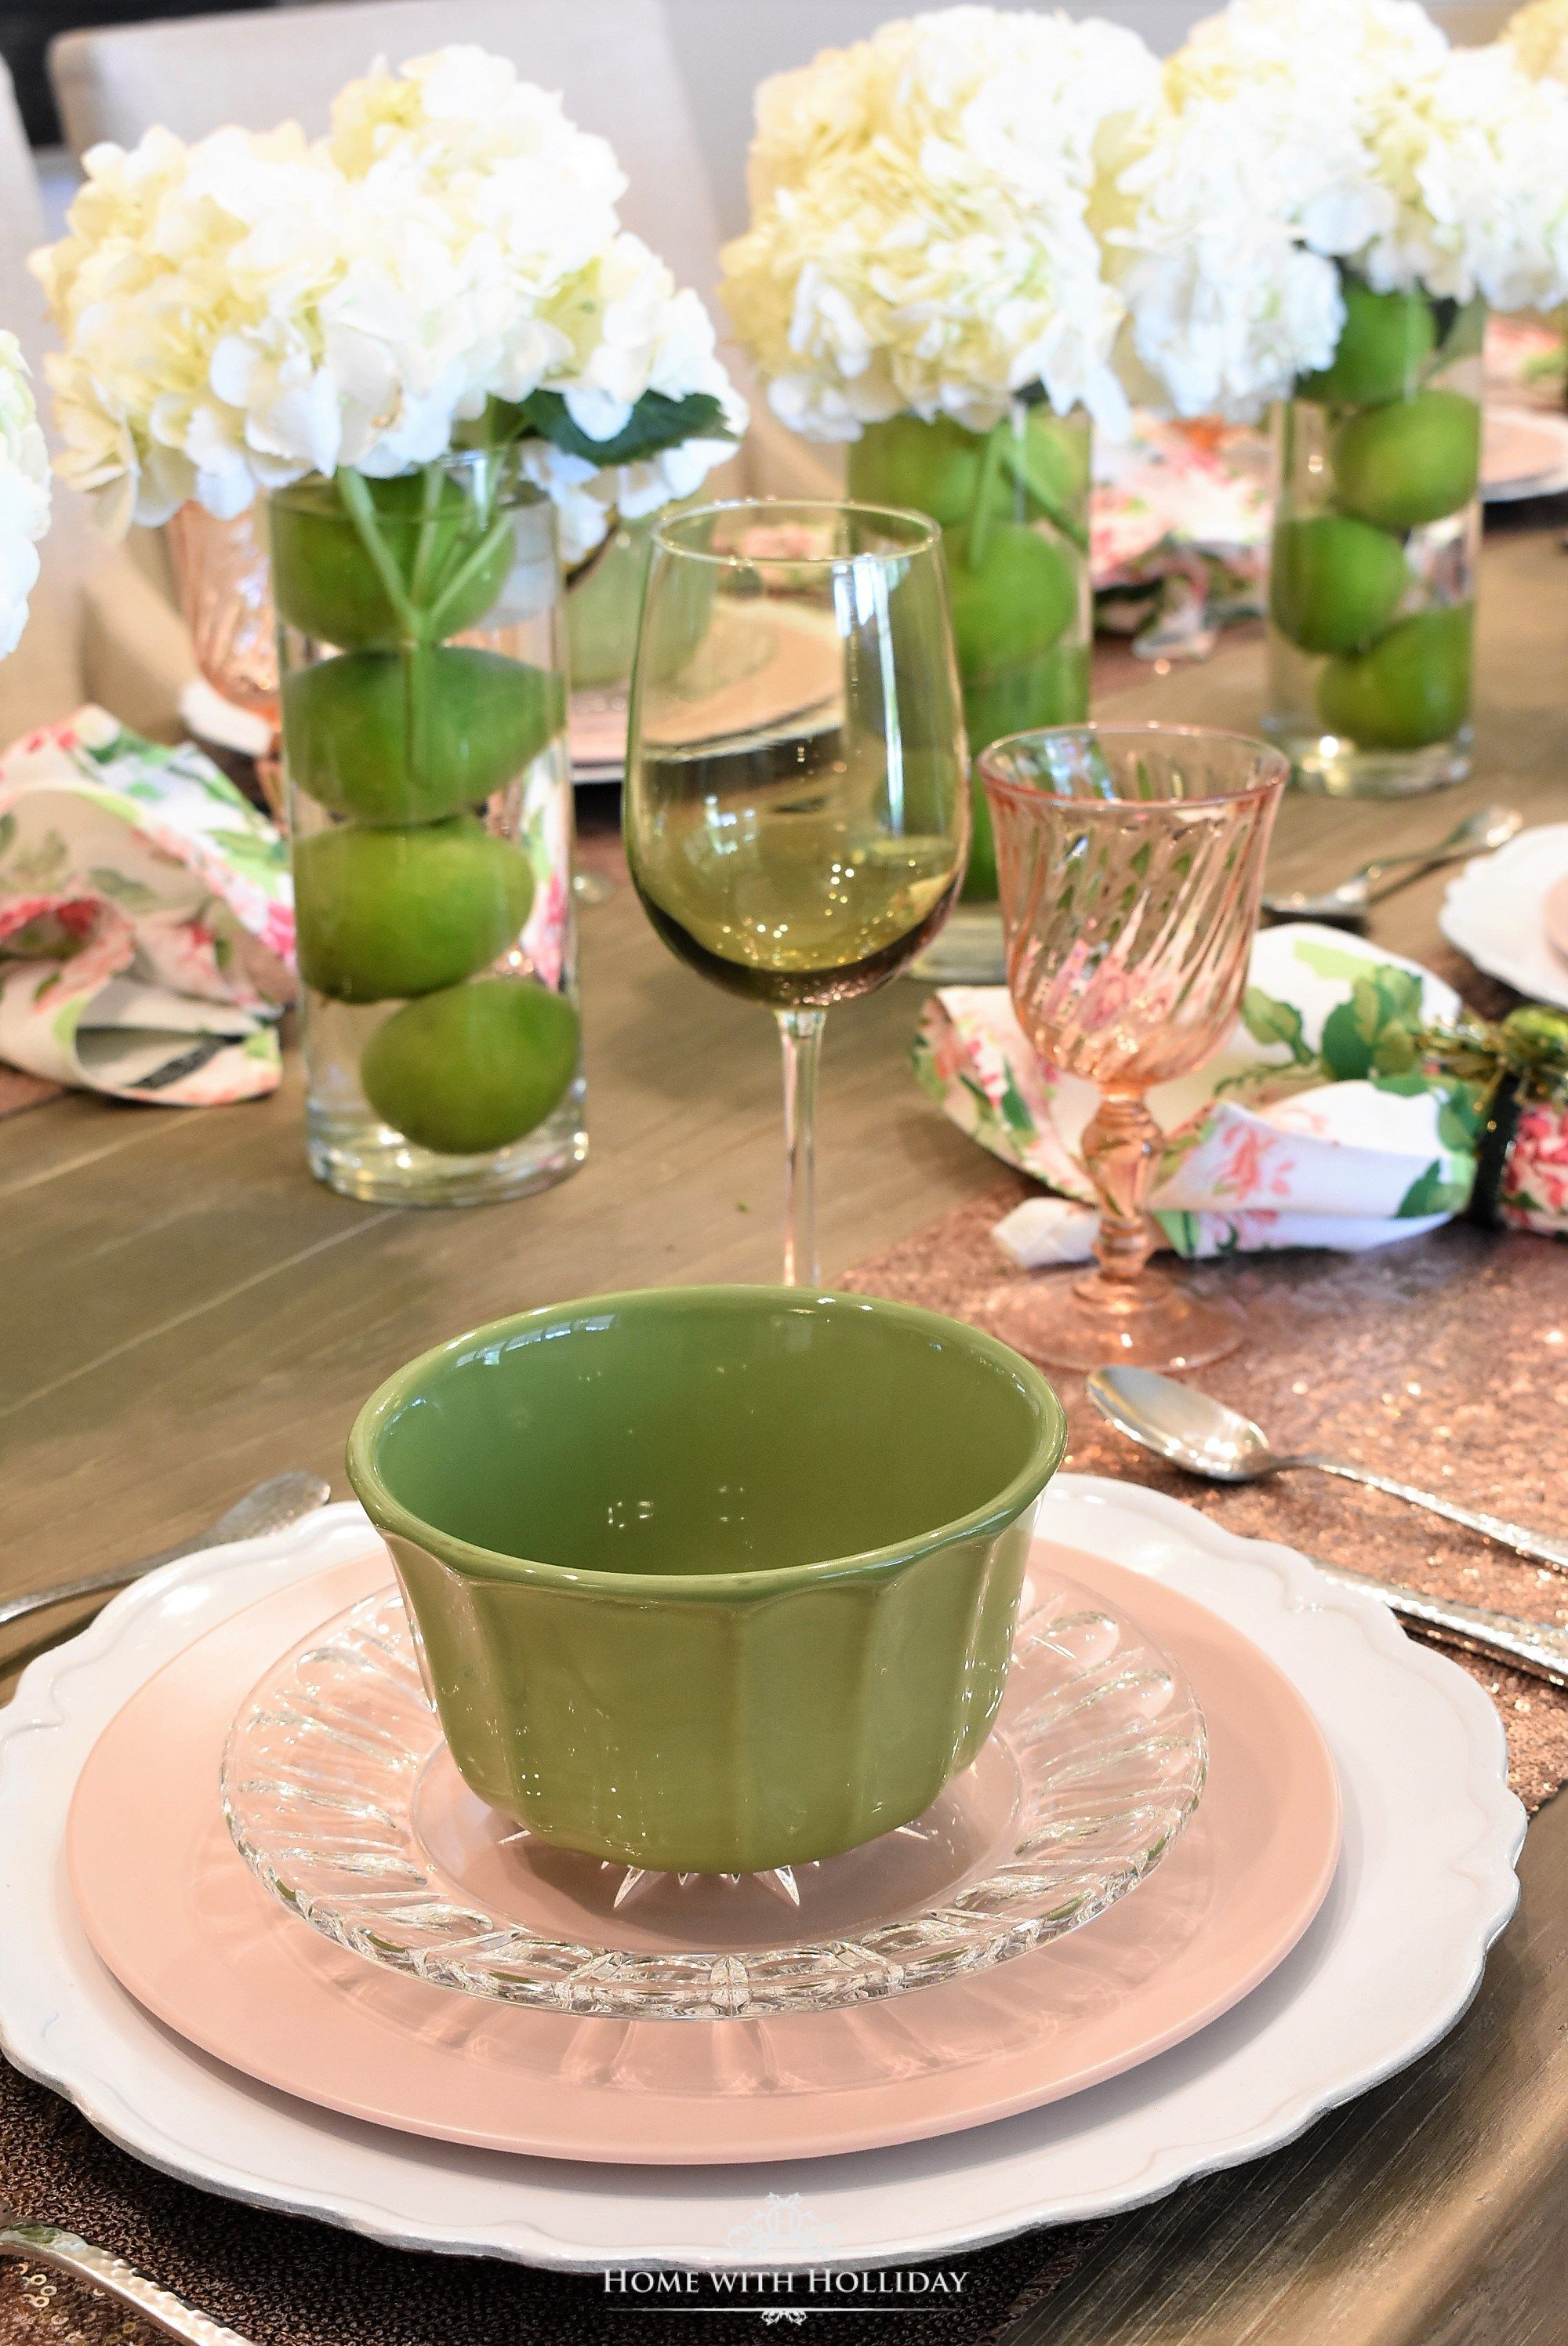 Tablesettingquenalbertini2 Spring Table Setting For Mothers Day Luncheon - Homewithhollidaycom